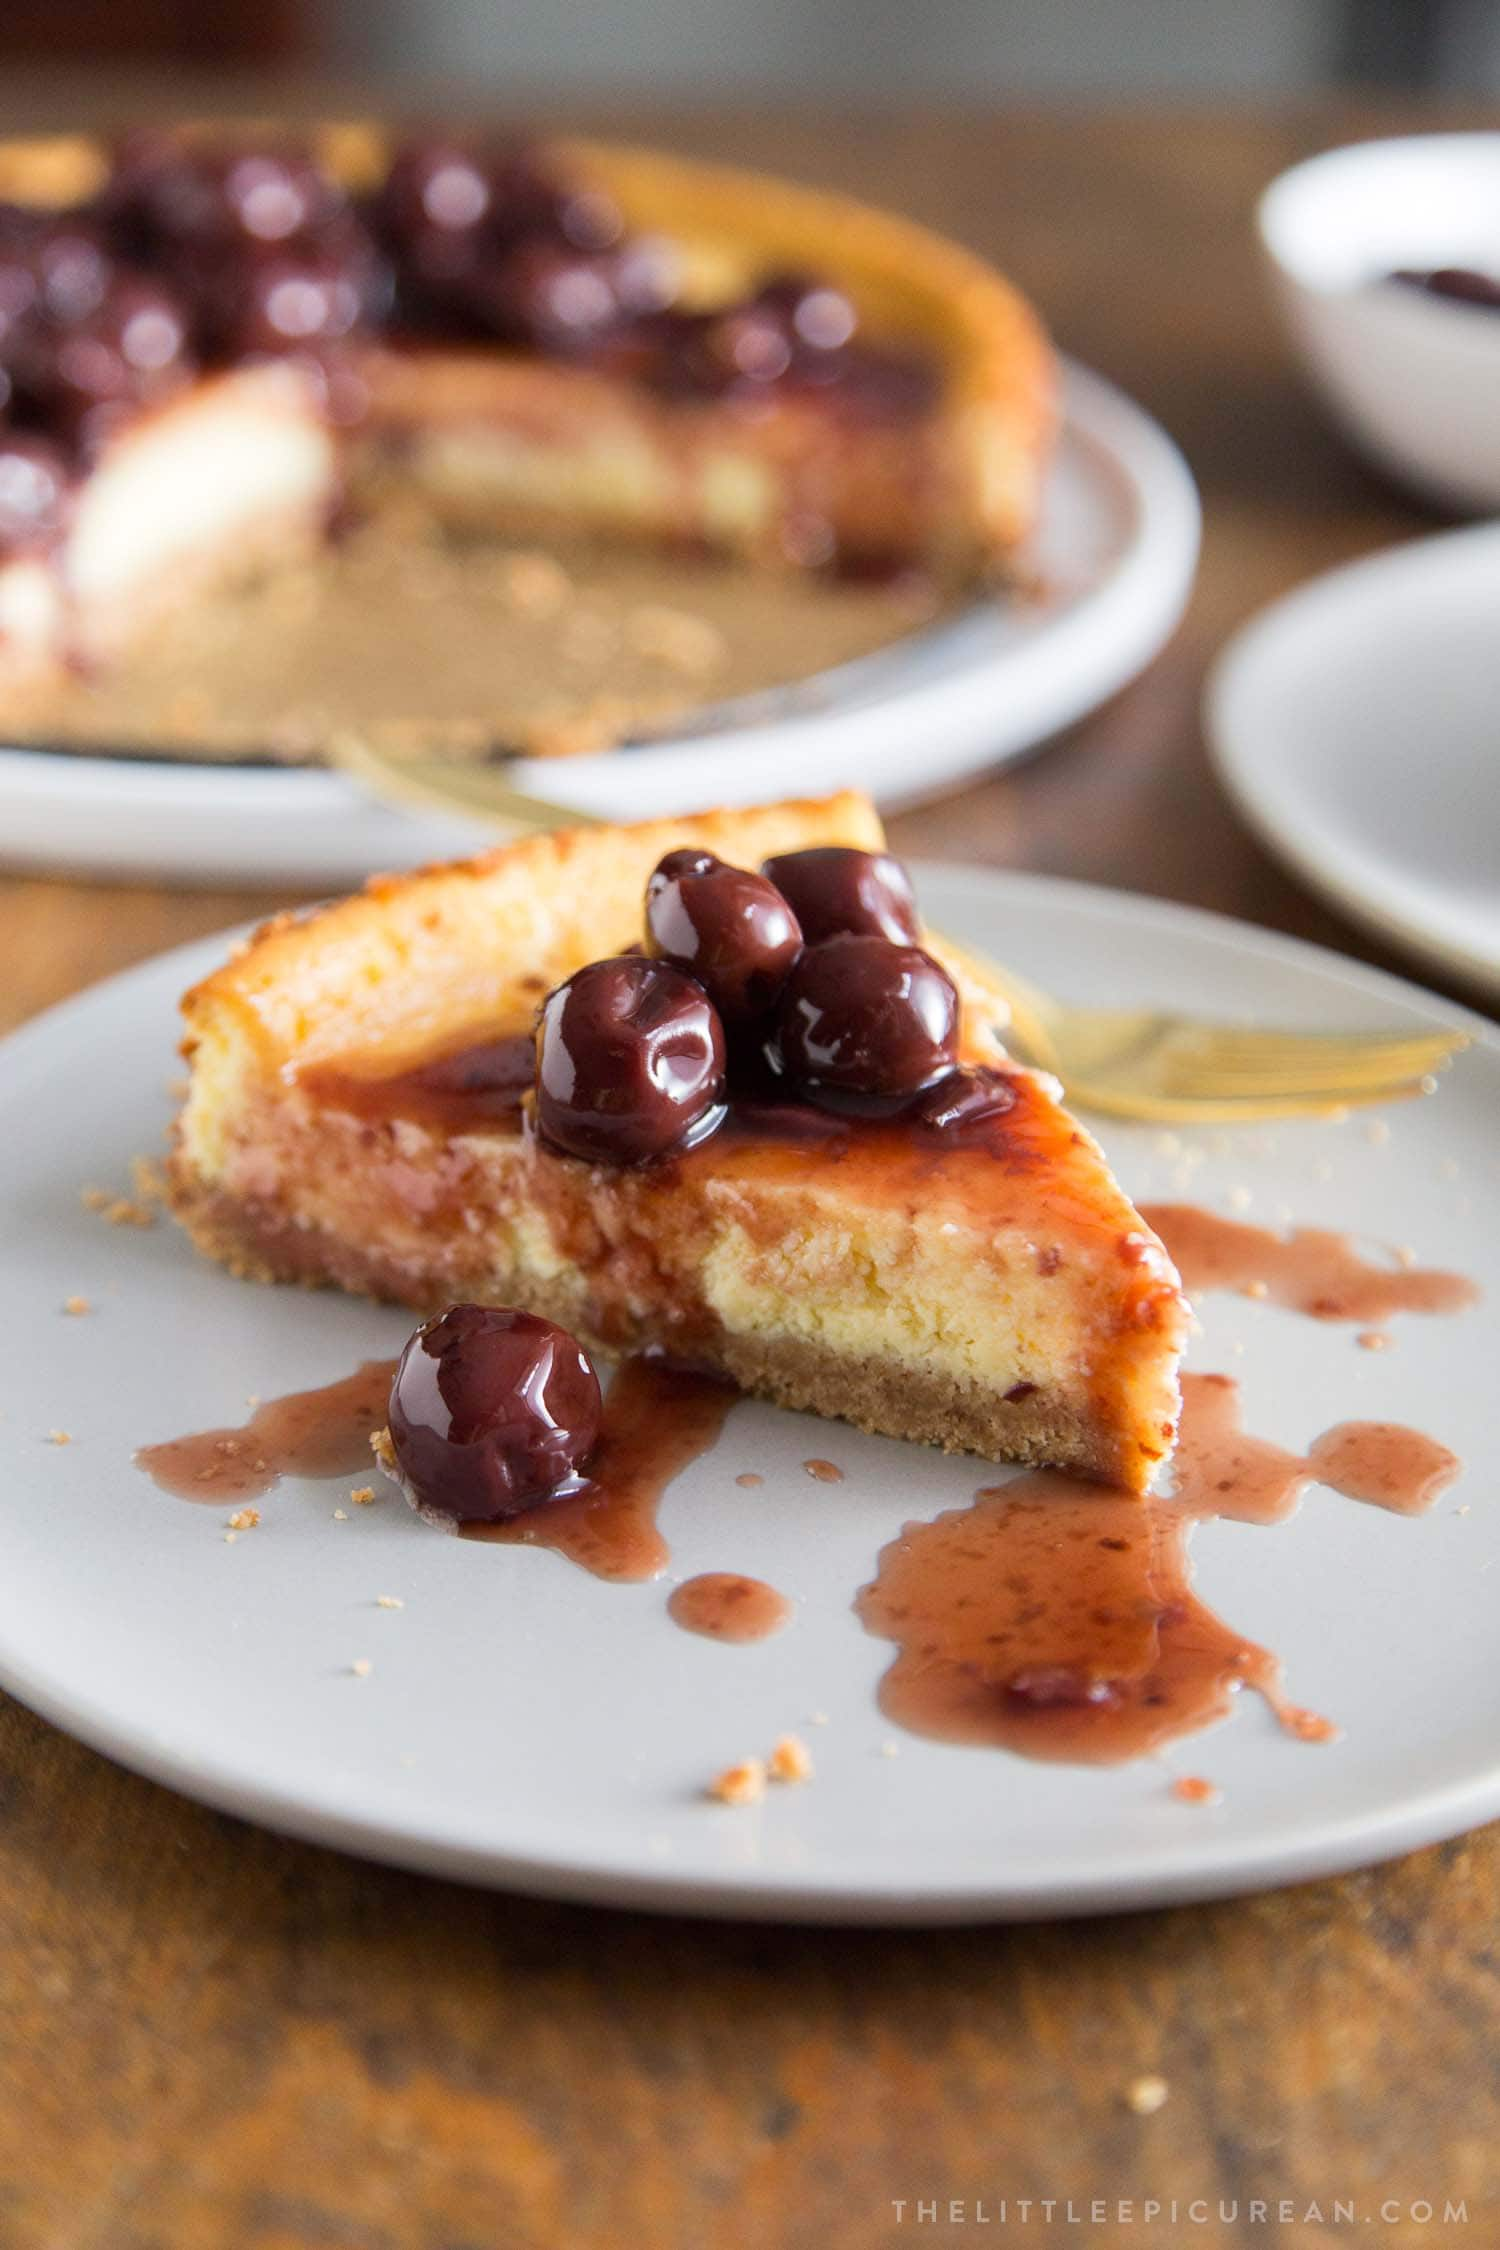 Brandied Cherries Ricotta Cheesecake Slice